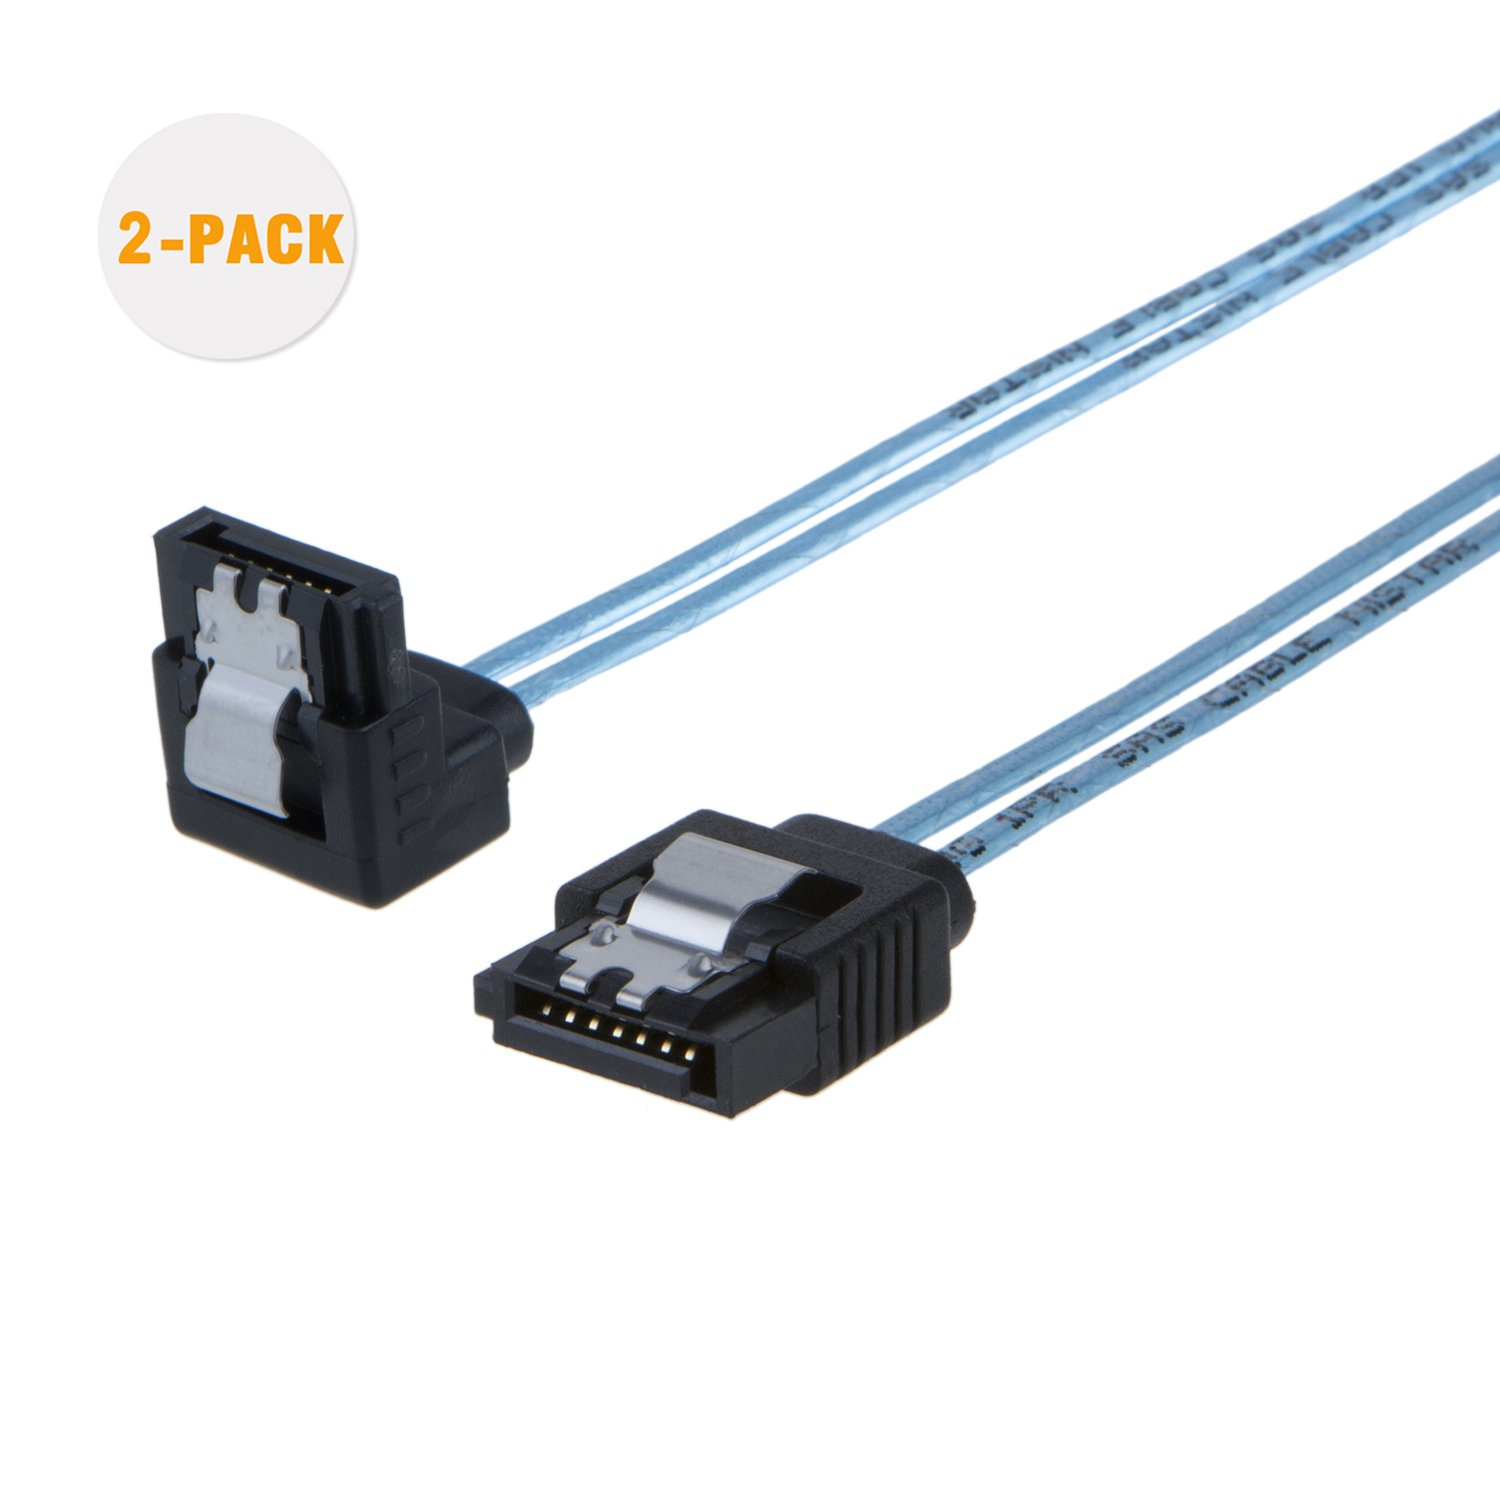 CableCreation SATA III Cable, [5-Pack] 18-inch SATA III 6.0 Gbps 7pin Female Straight to Right Angle Female Data Cable with Locking Latch, 1.5FT Blue CS0076